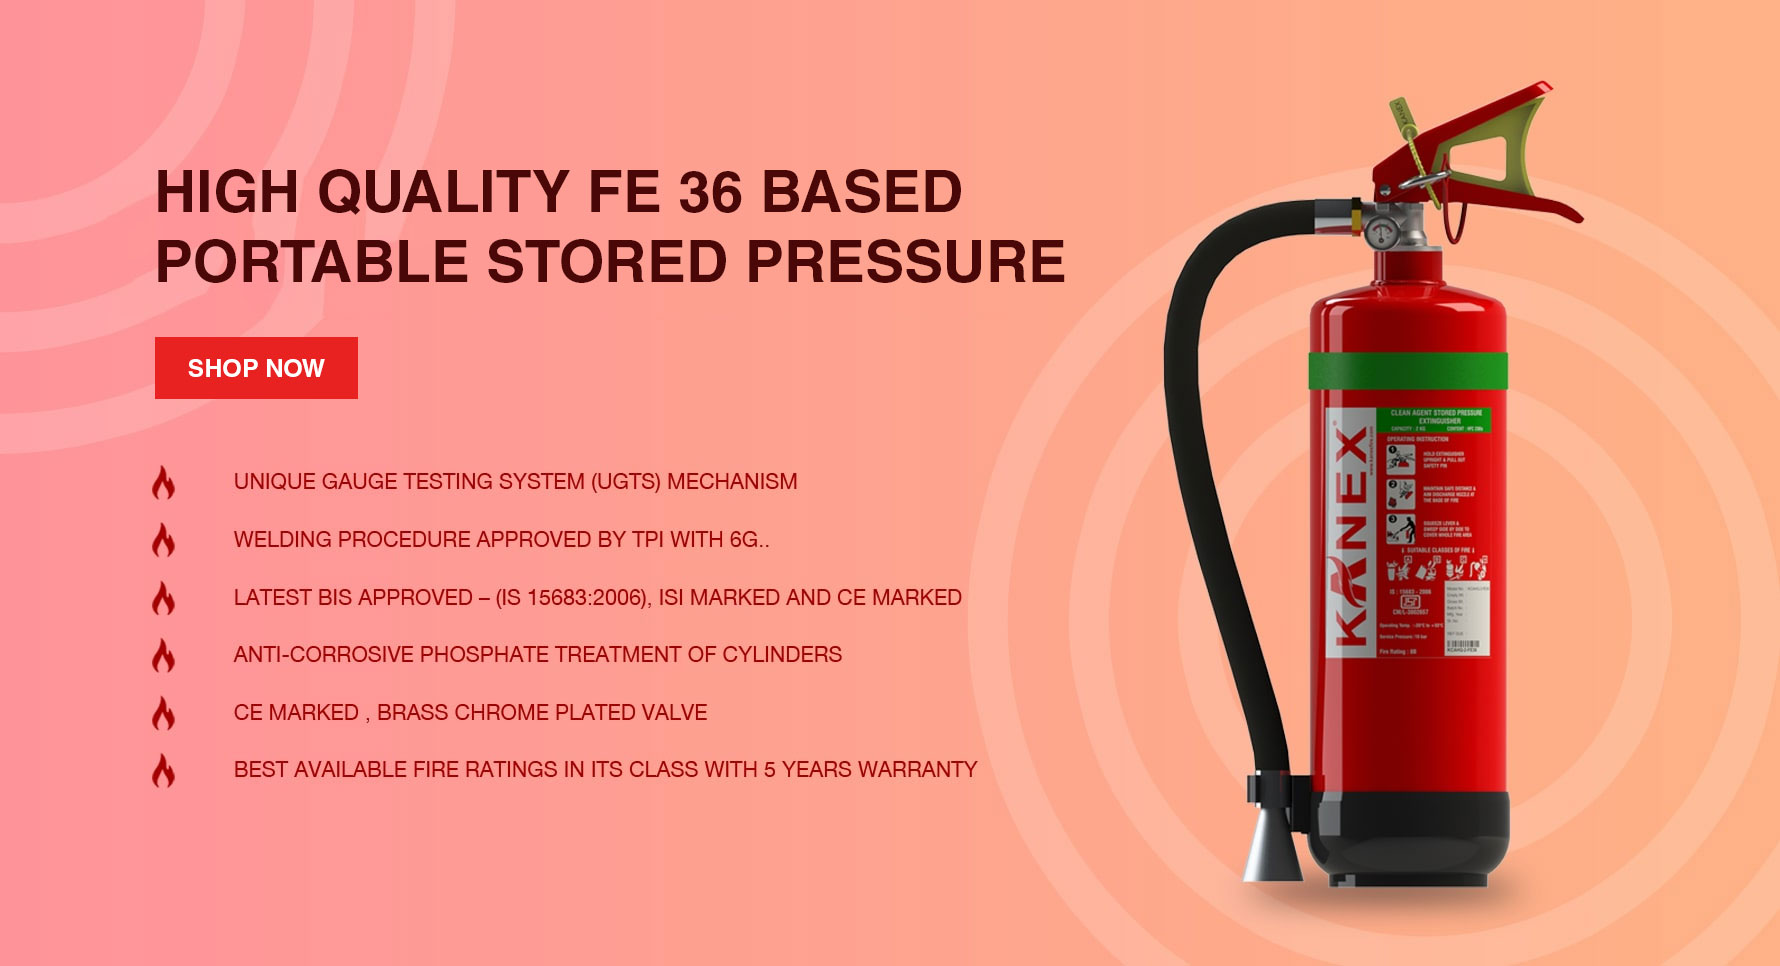 High Quality FE 36 Based Portable Stored Pressure Fire Extinguisher